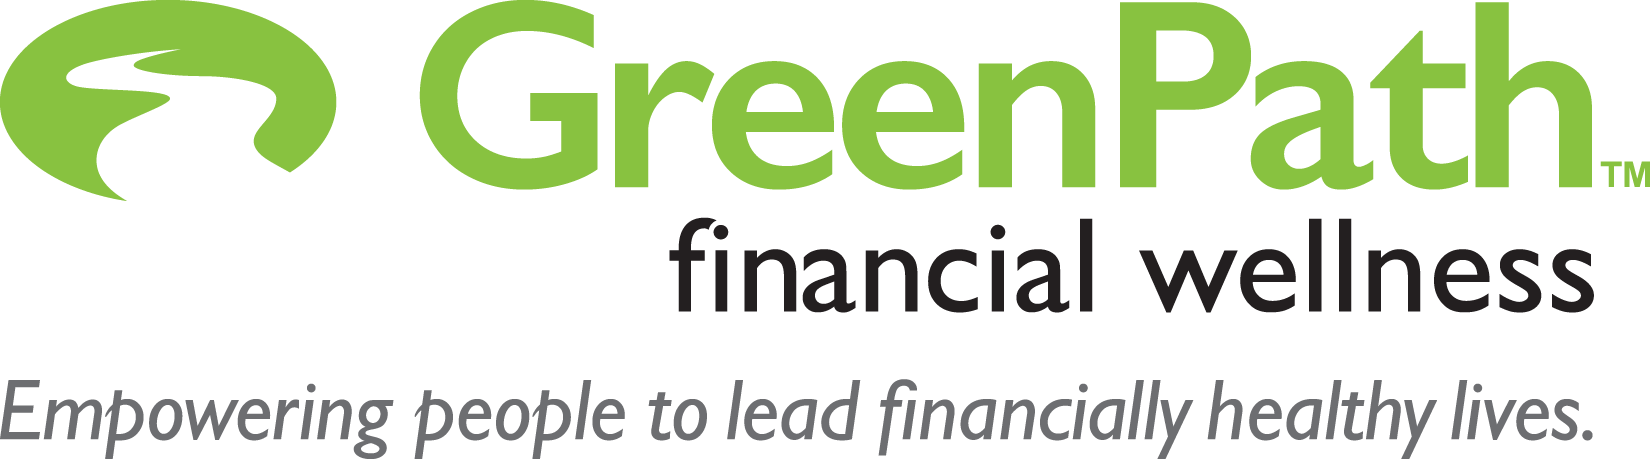 Greenpath Financial Wellness: Empowering people to lead financially healthy lives.